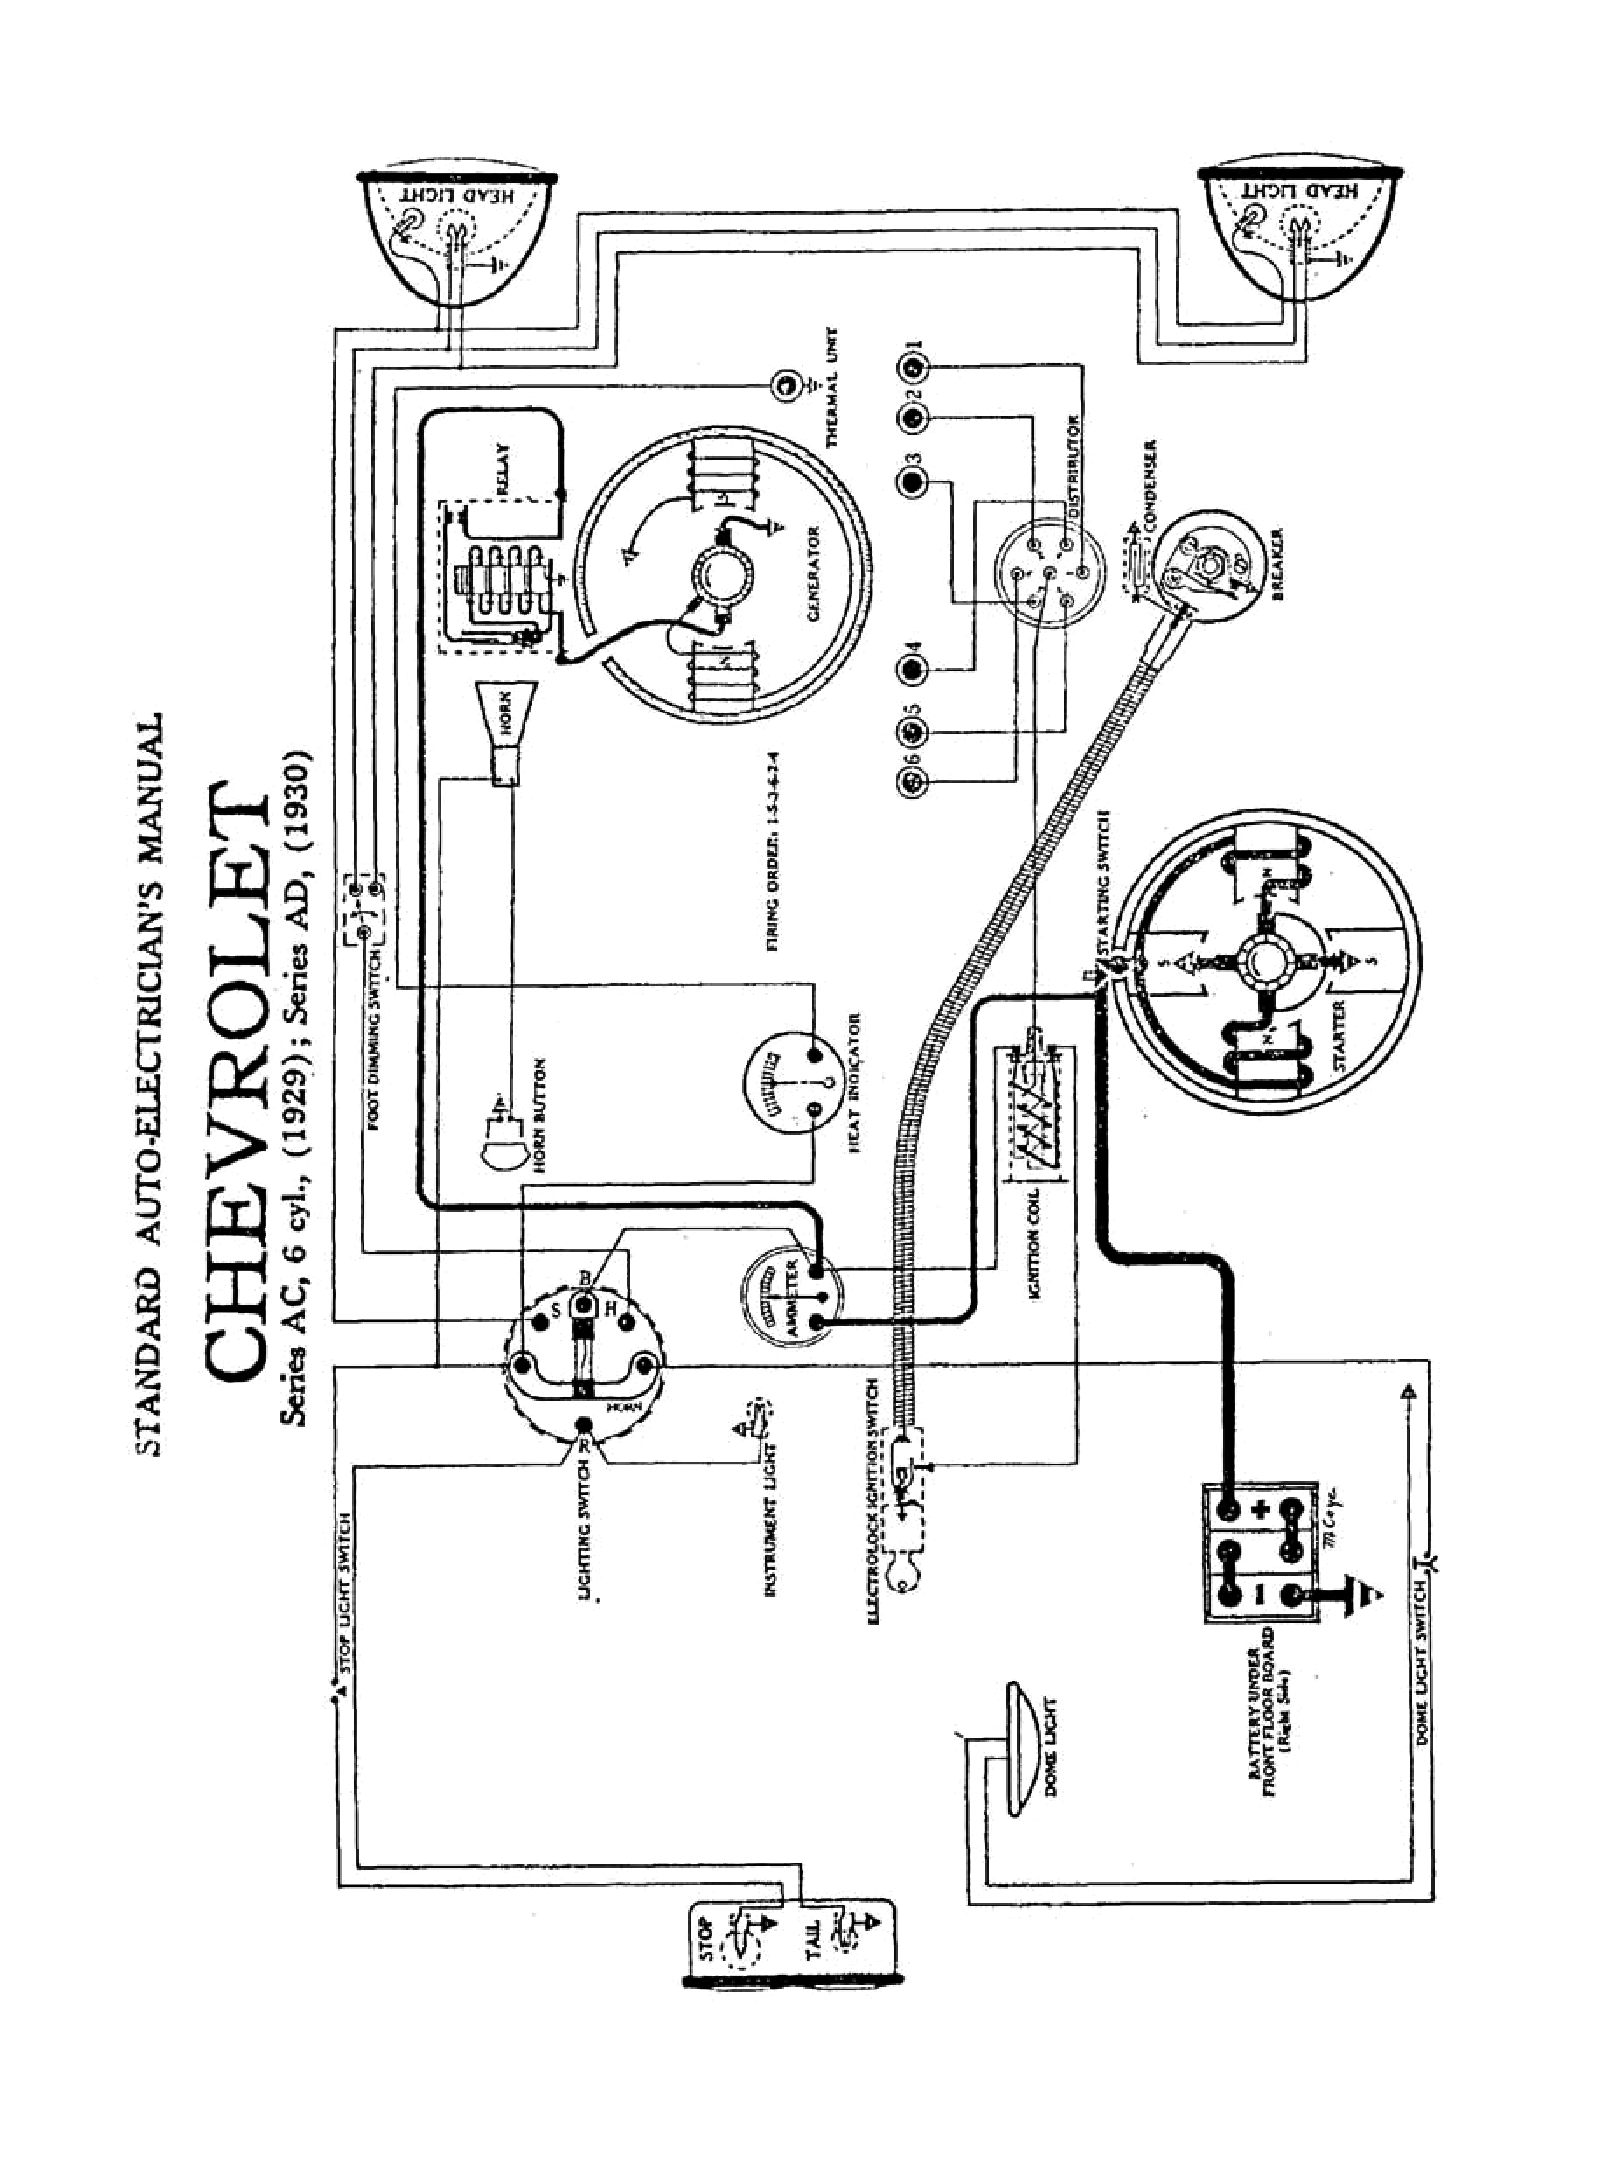 animal model wiring diagram